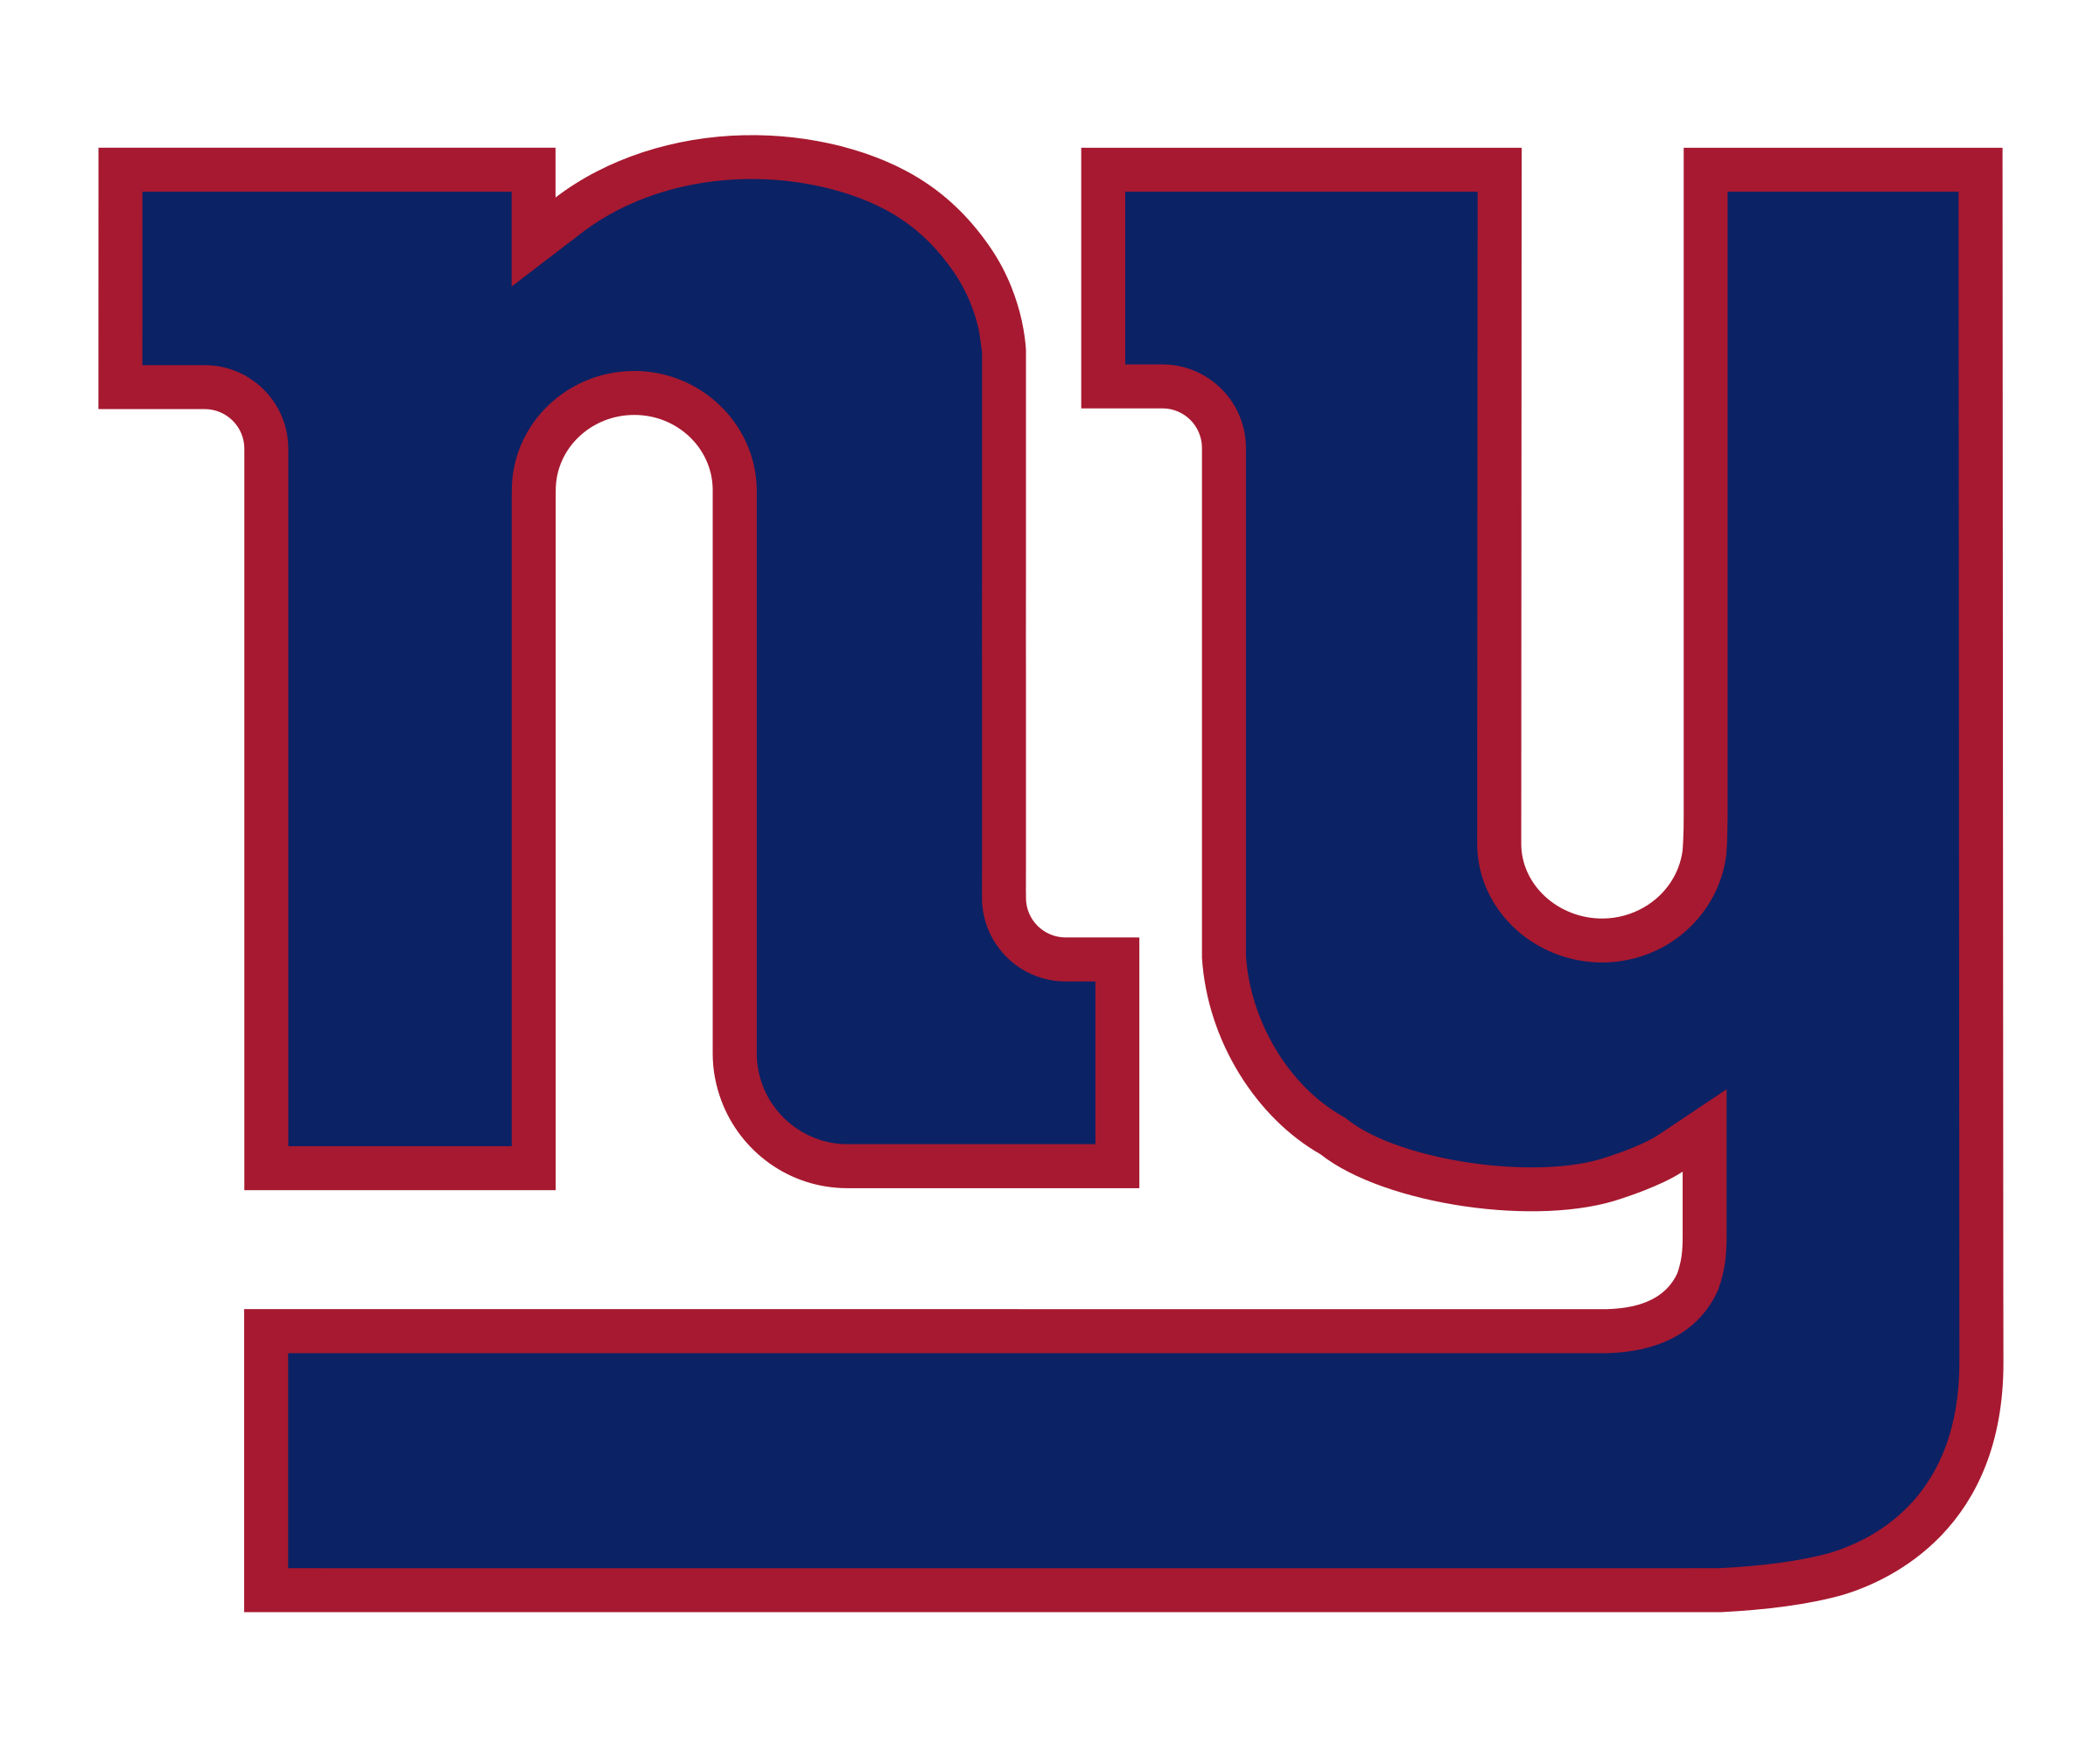 It's just an image of Crafty New York Giants Logos